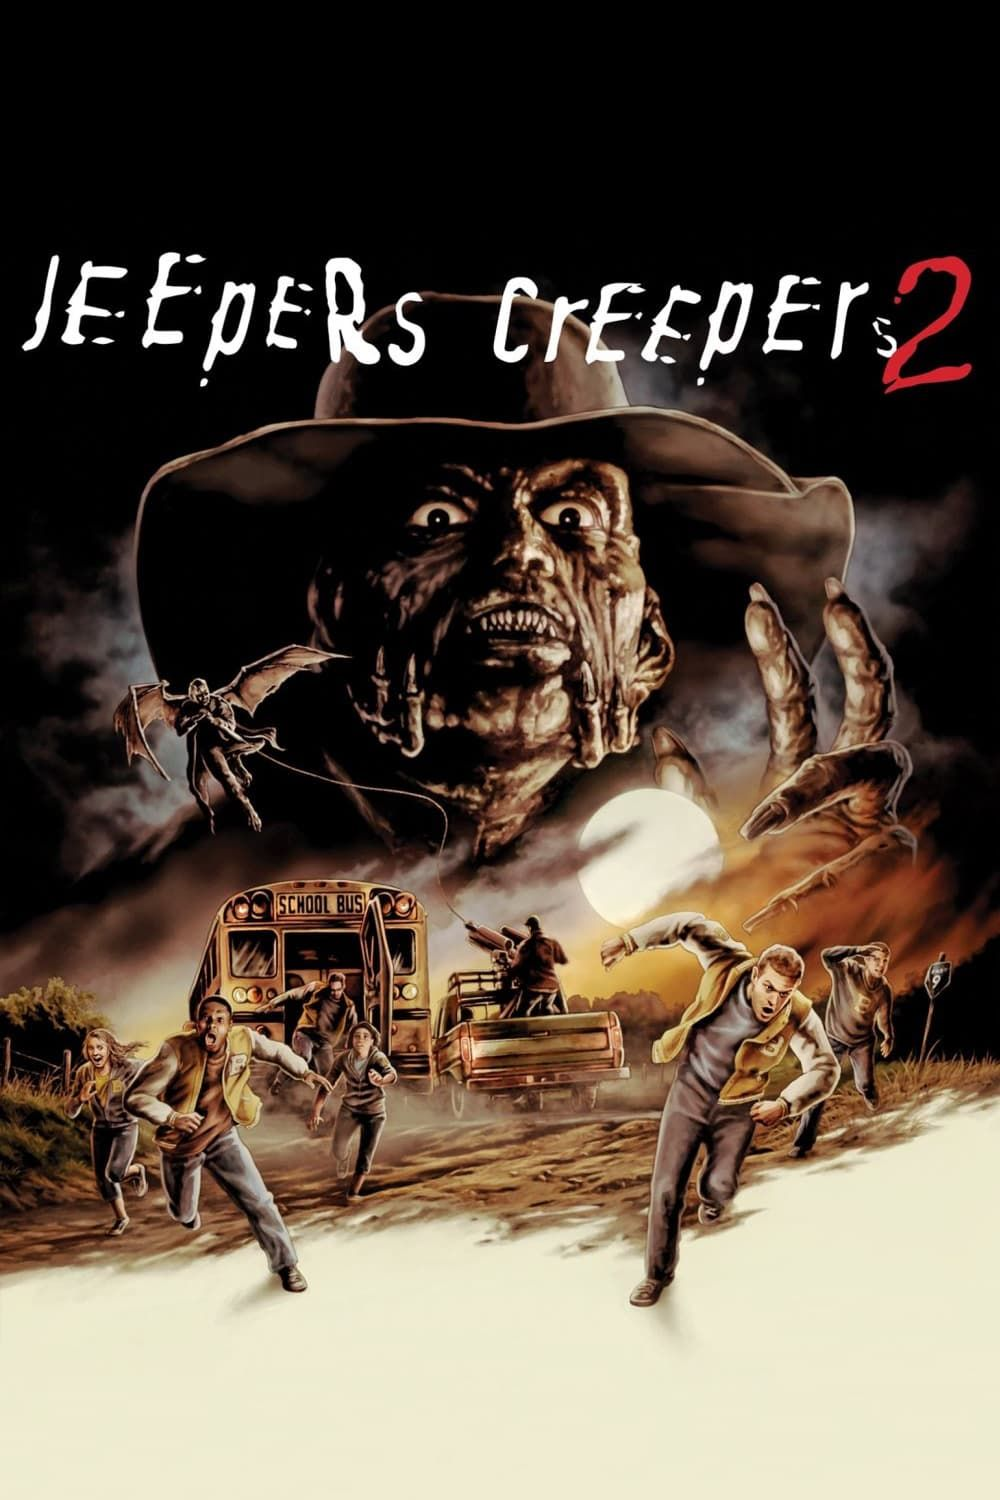 Jeepers Creepers 2 New Hollywood Hindi Dubbed Movie In Hd Jeepers Creepers Creepers Movies